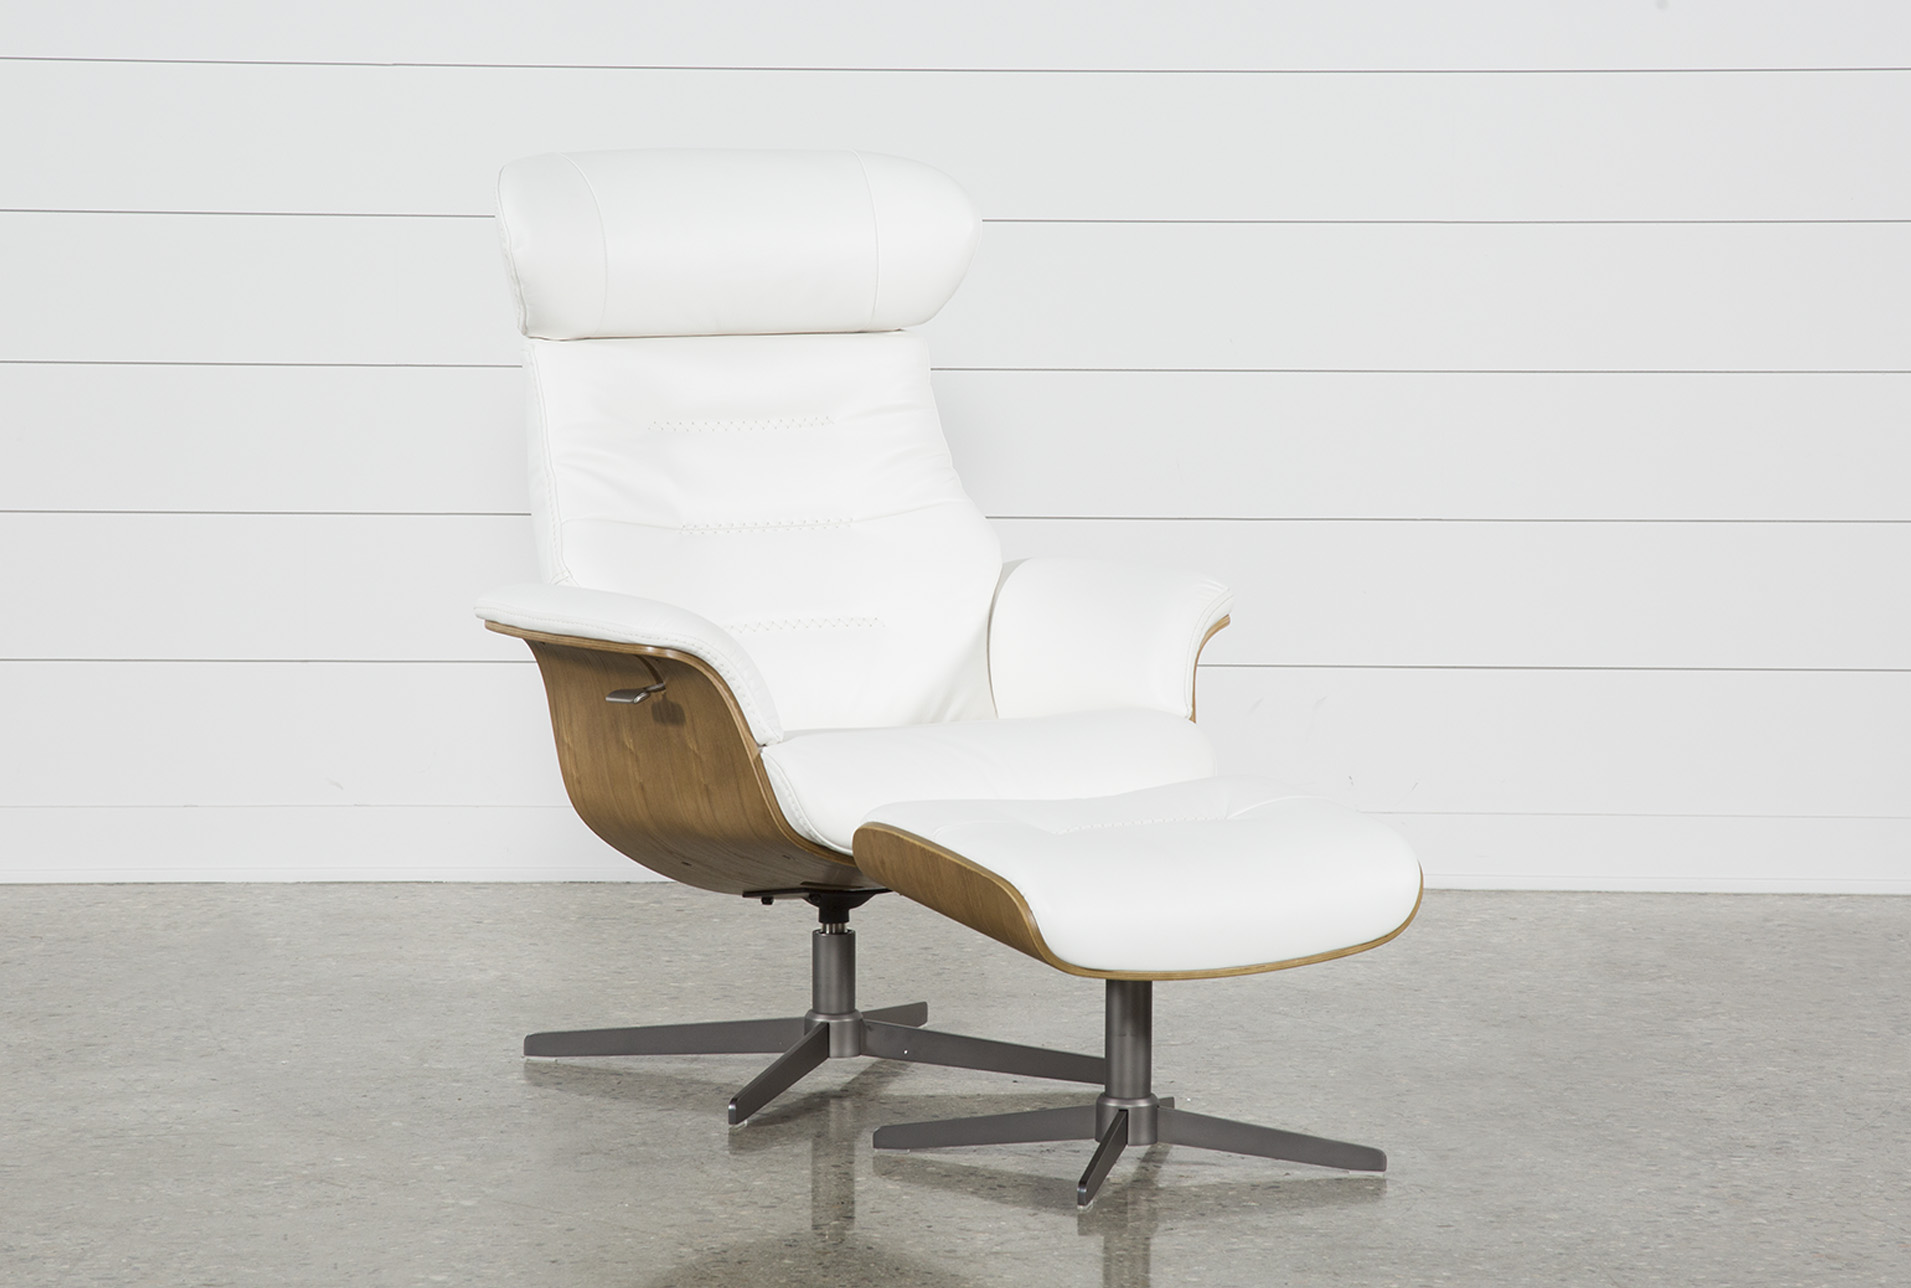 Amala White Leather Chair U0026amp; Ottoman (Qty: 1) Has Been Successfully  Added To Your Cart.